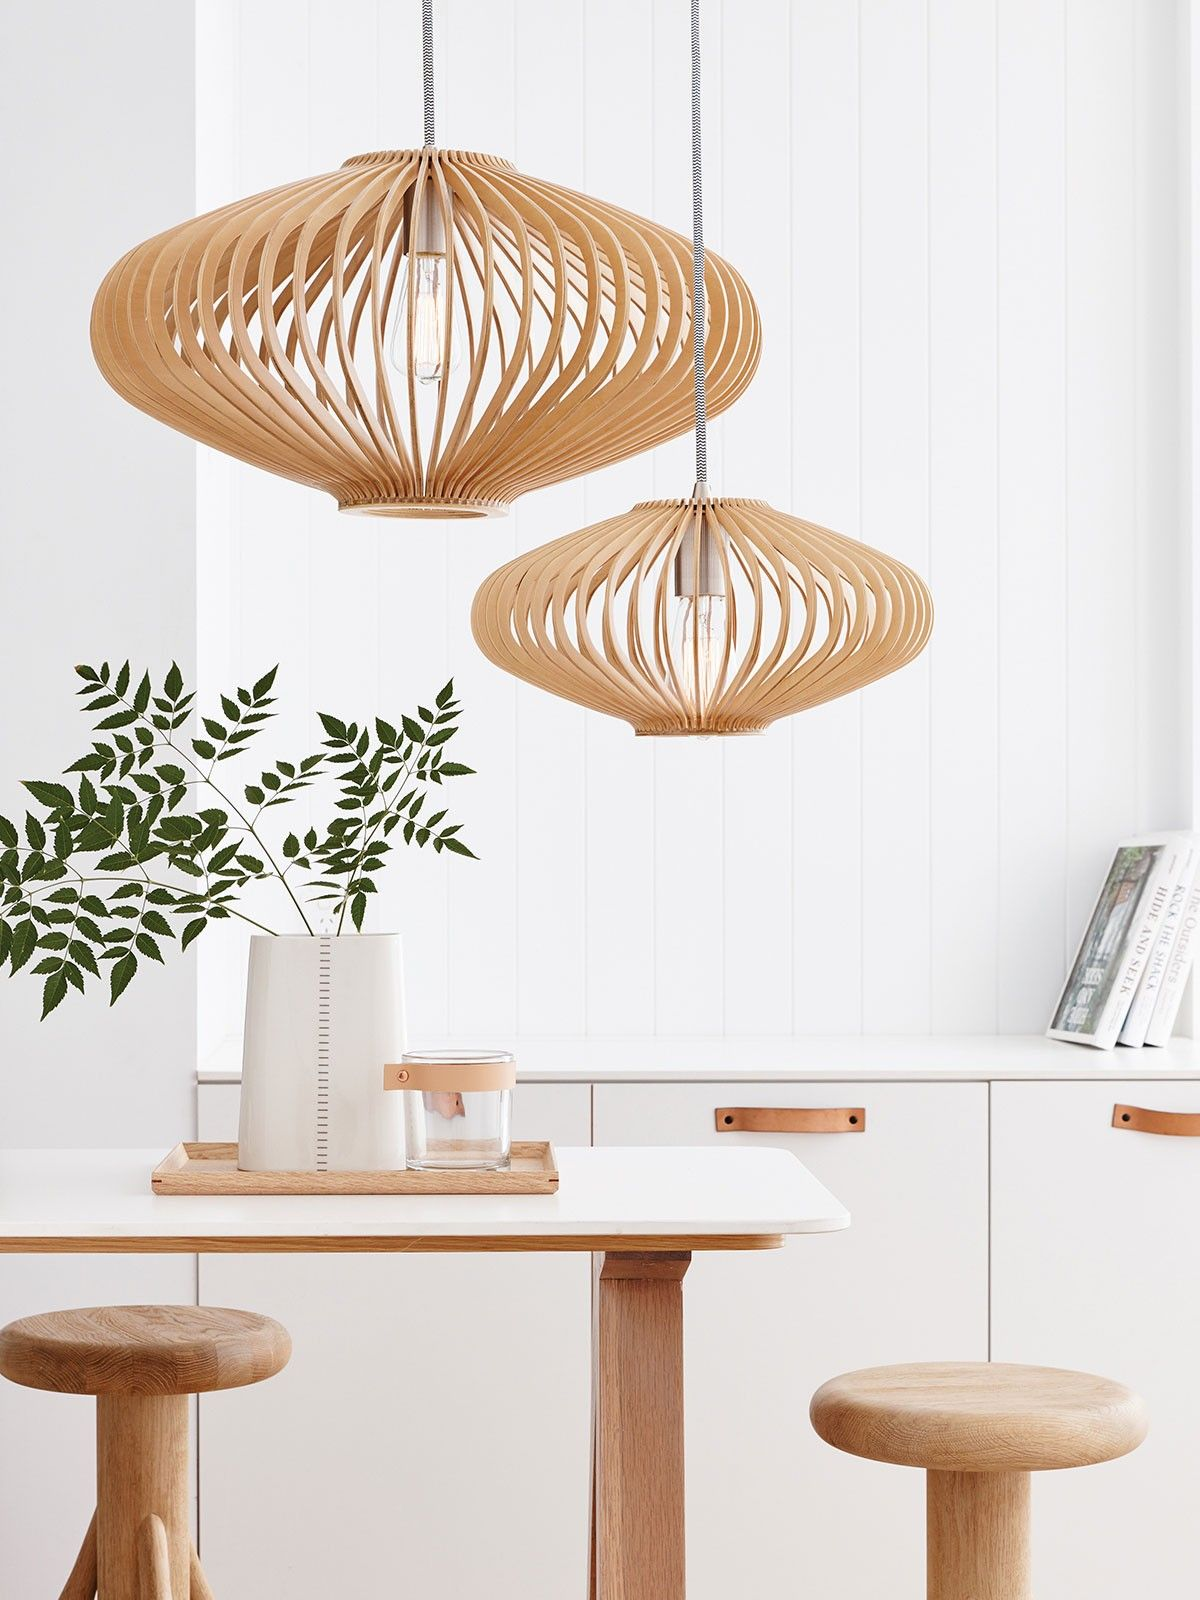 15 scandi rooms nailing the natural wood trend pendant lighting 15 scandi rooms nailing the natural wood trend minimal pendant light 768x1024 beacon lightinghouse aloadofball Images